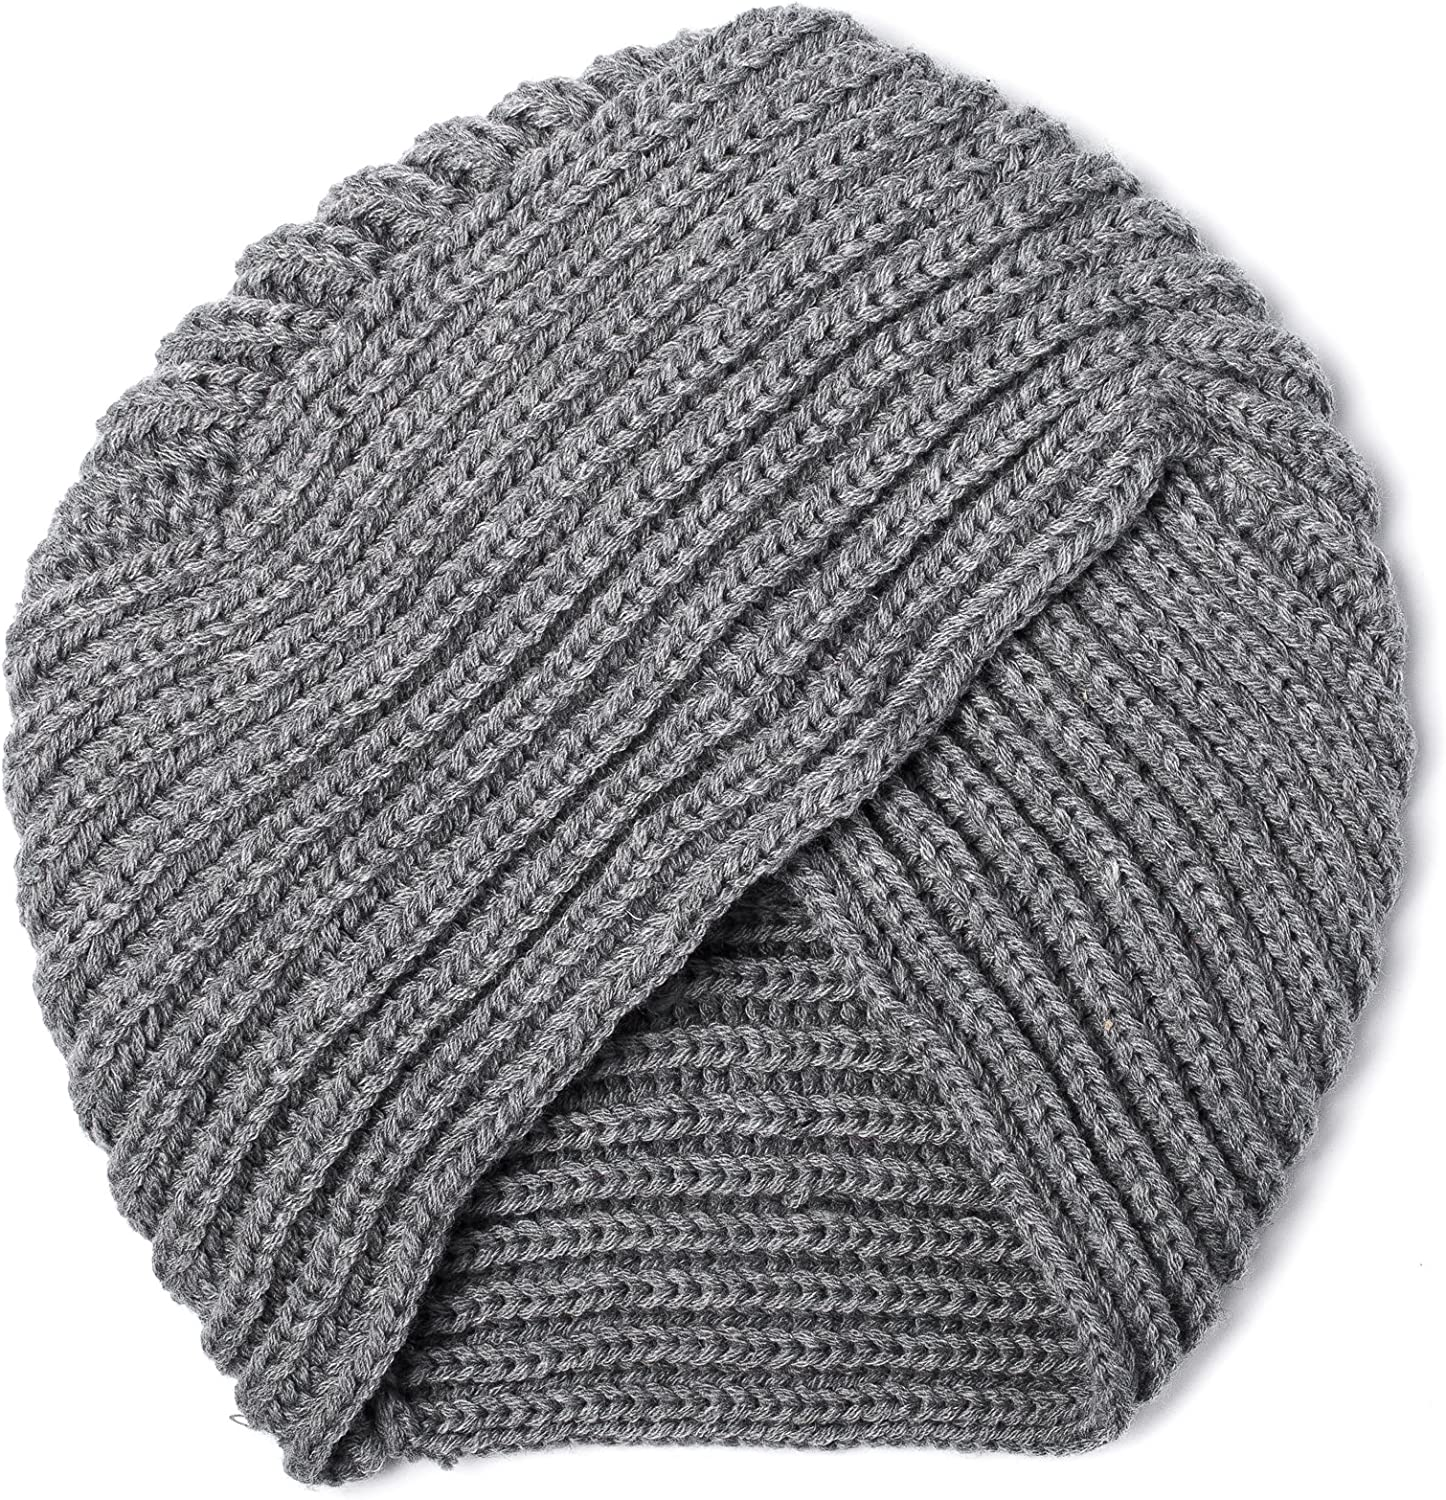 Born to Love At the price - Girls for Turban Gray Sale SALE% OFF